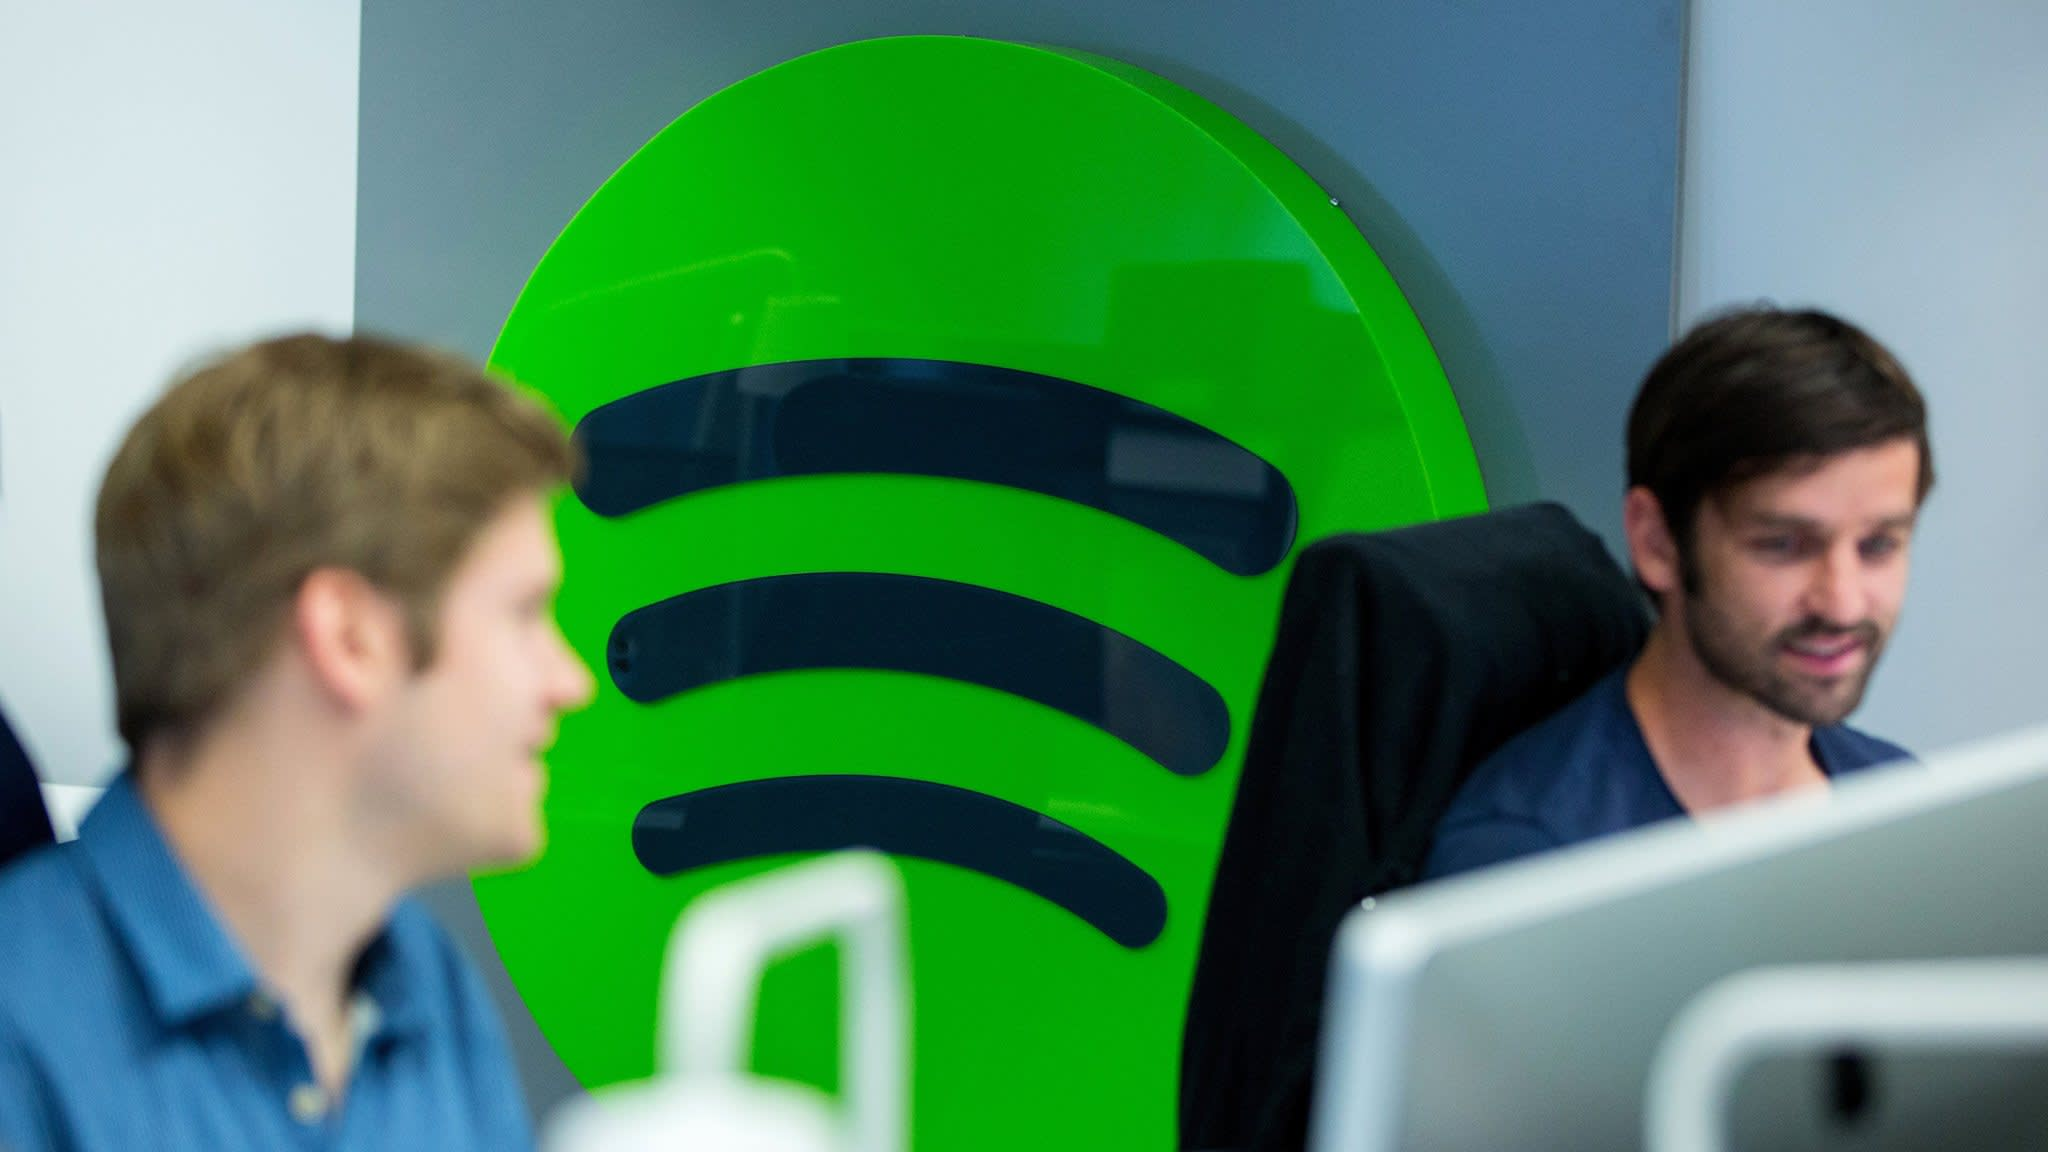 Spotify abandons attempt to buy SoundCloud